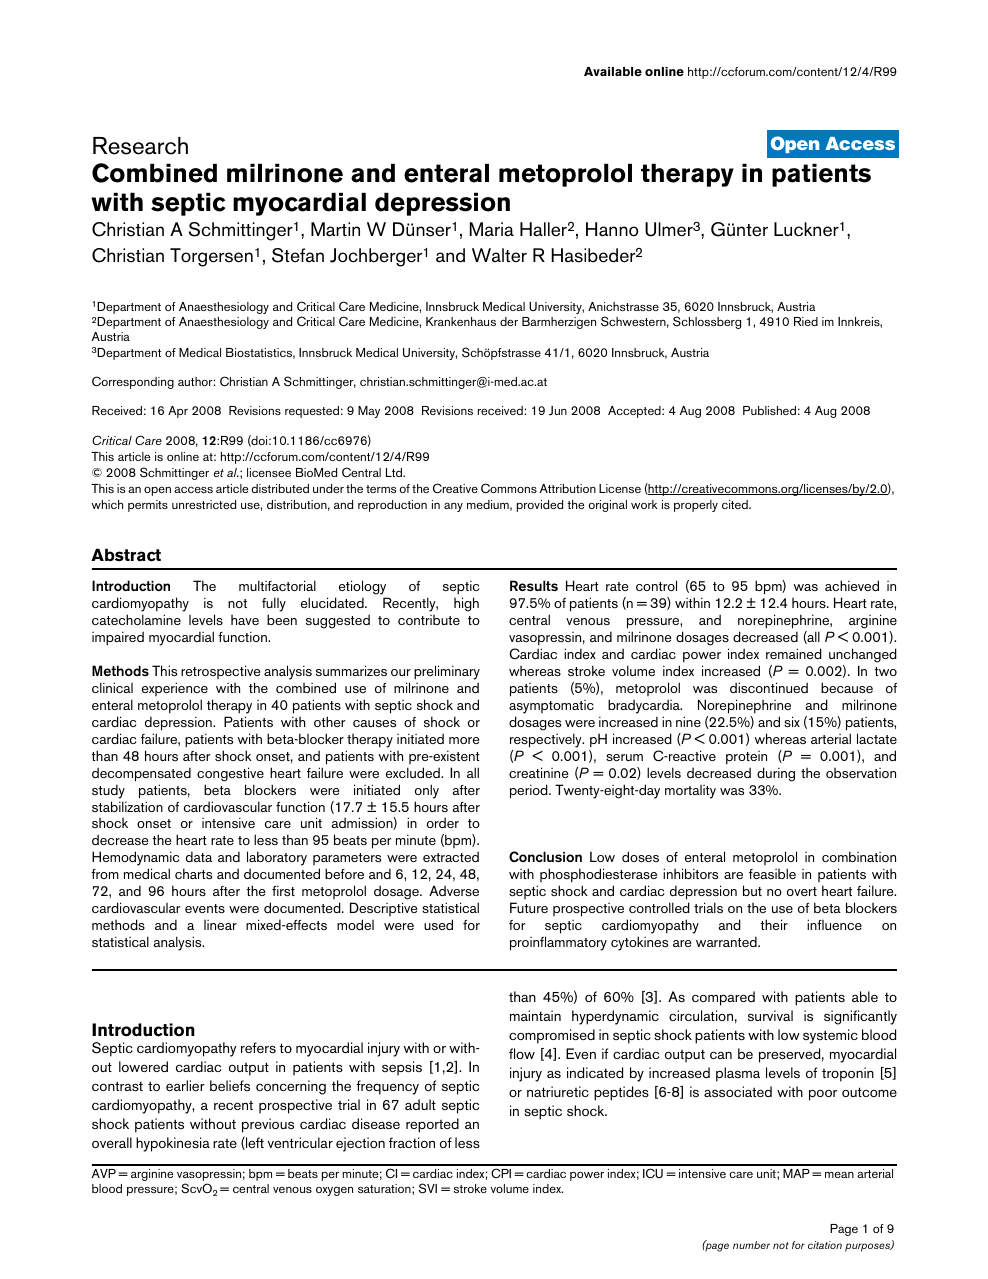 Combined milrinone and enteral metoprolol therapy in